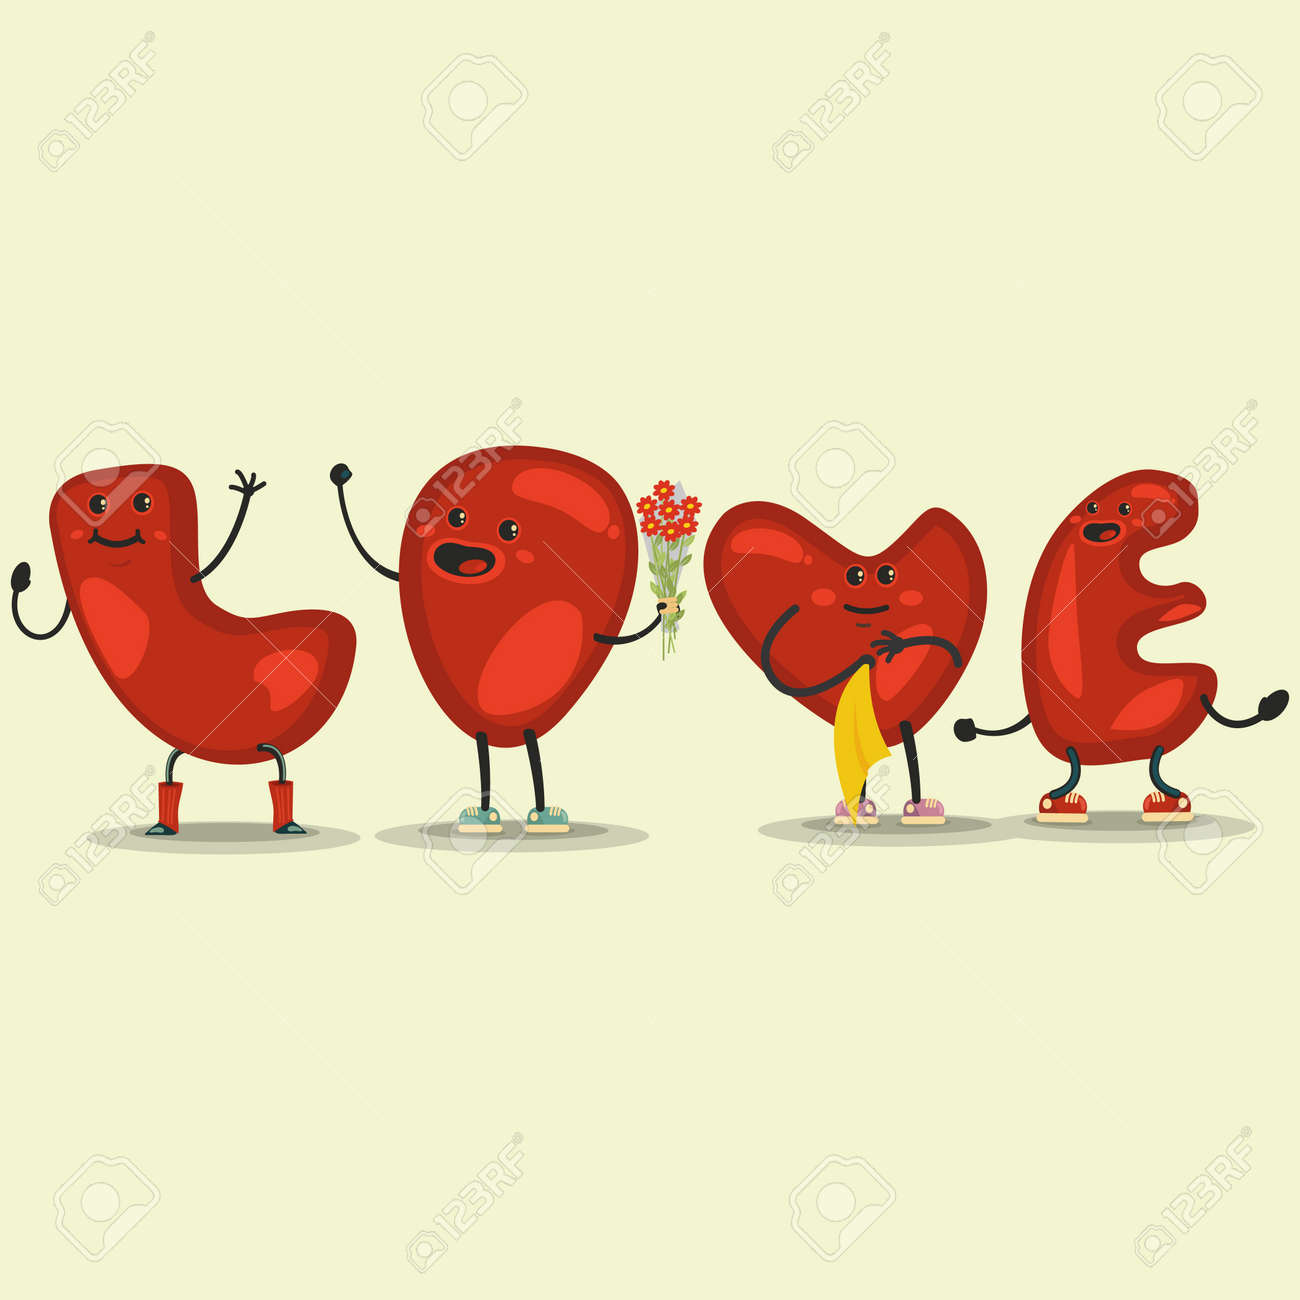 Motion De Coeur D Amour Mignon Illustration Vectorielle De Saint Valentin Dessin Animé